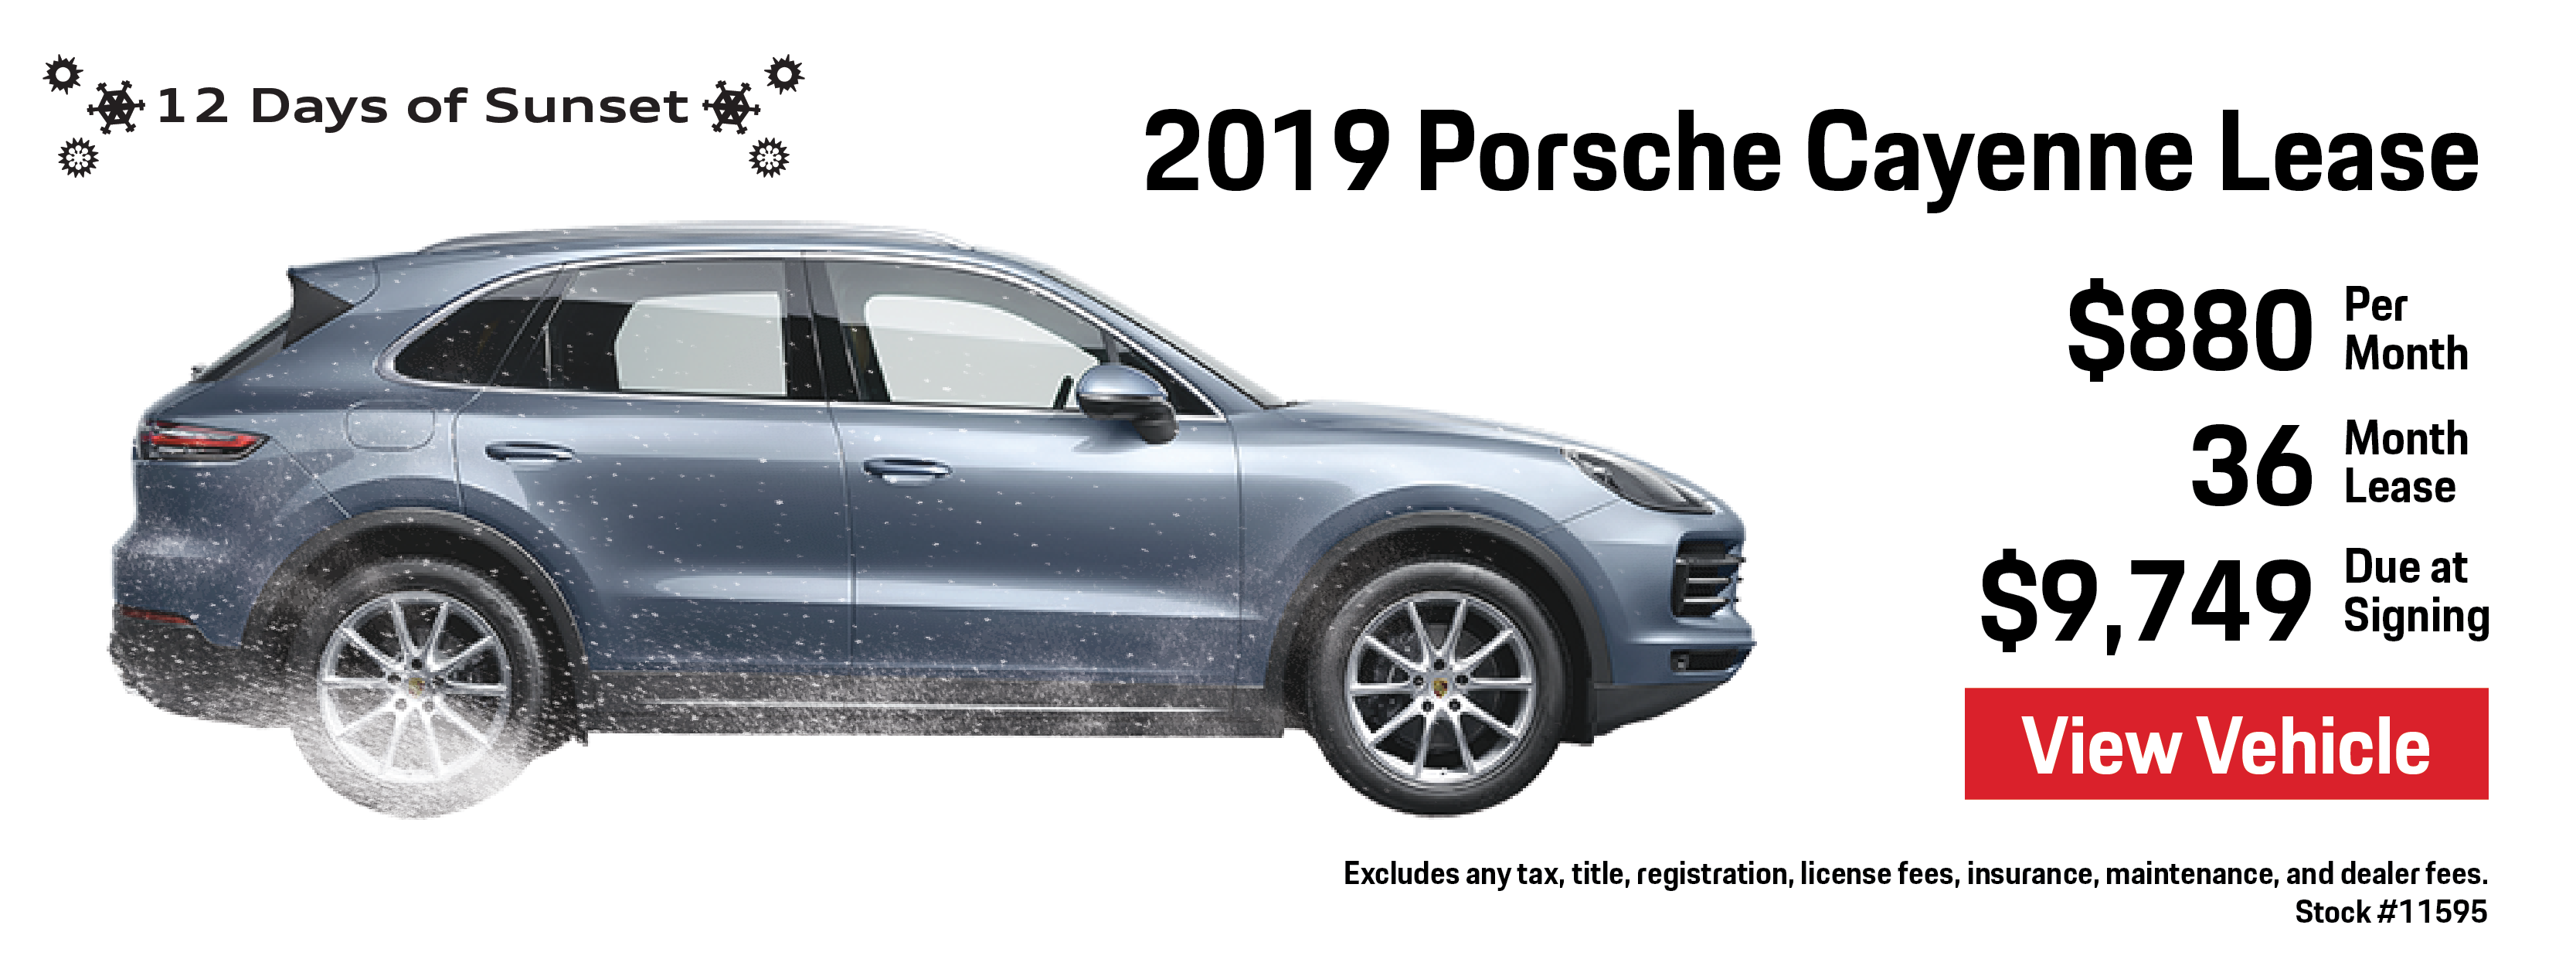 12 Days of Sunset   Day 5   2019 Porsche Cayenne Lease   $738 per month   36 month lease   $9,608 due at signing   View Details